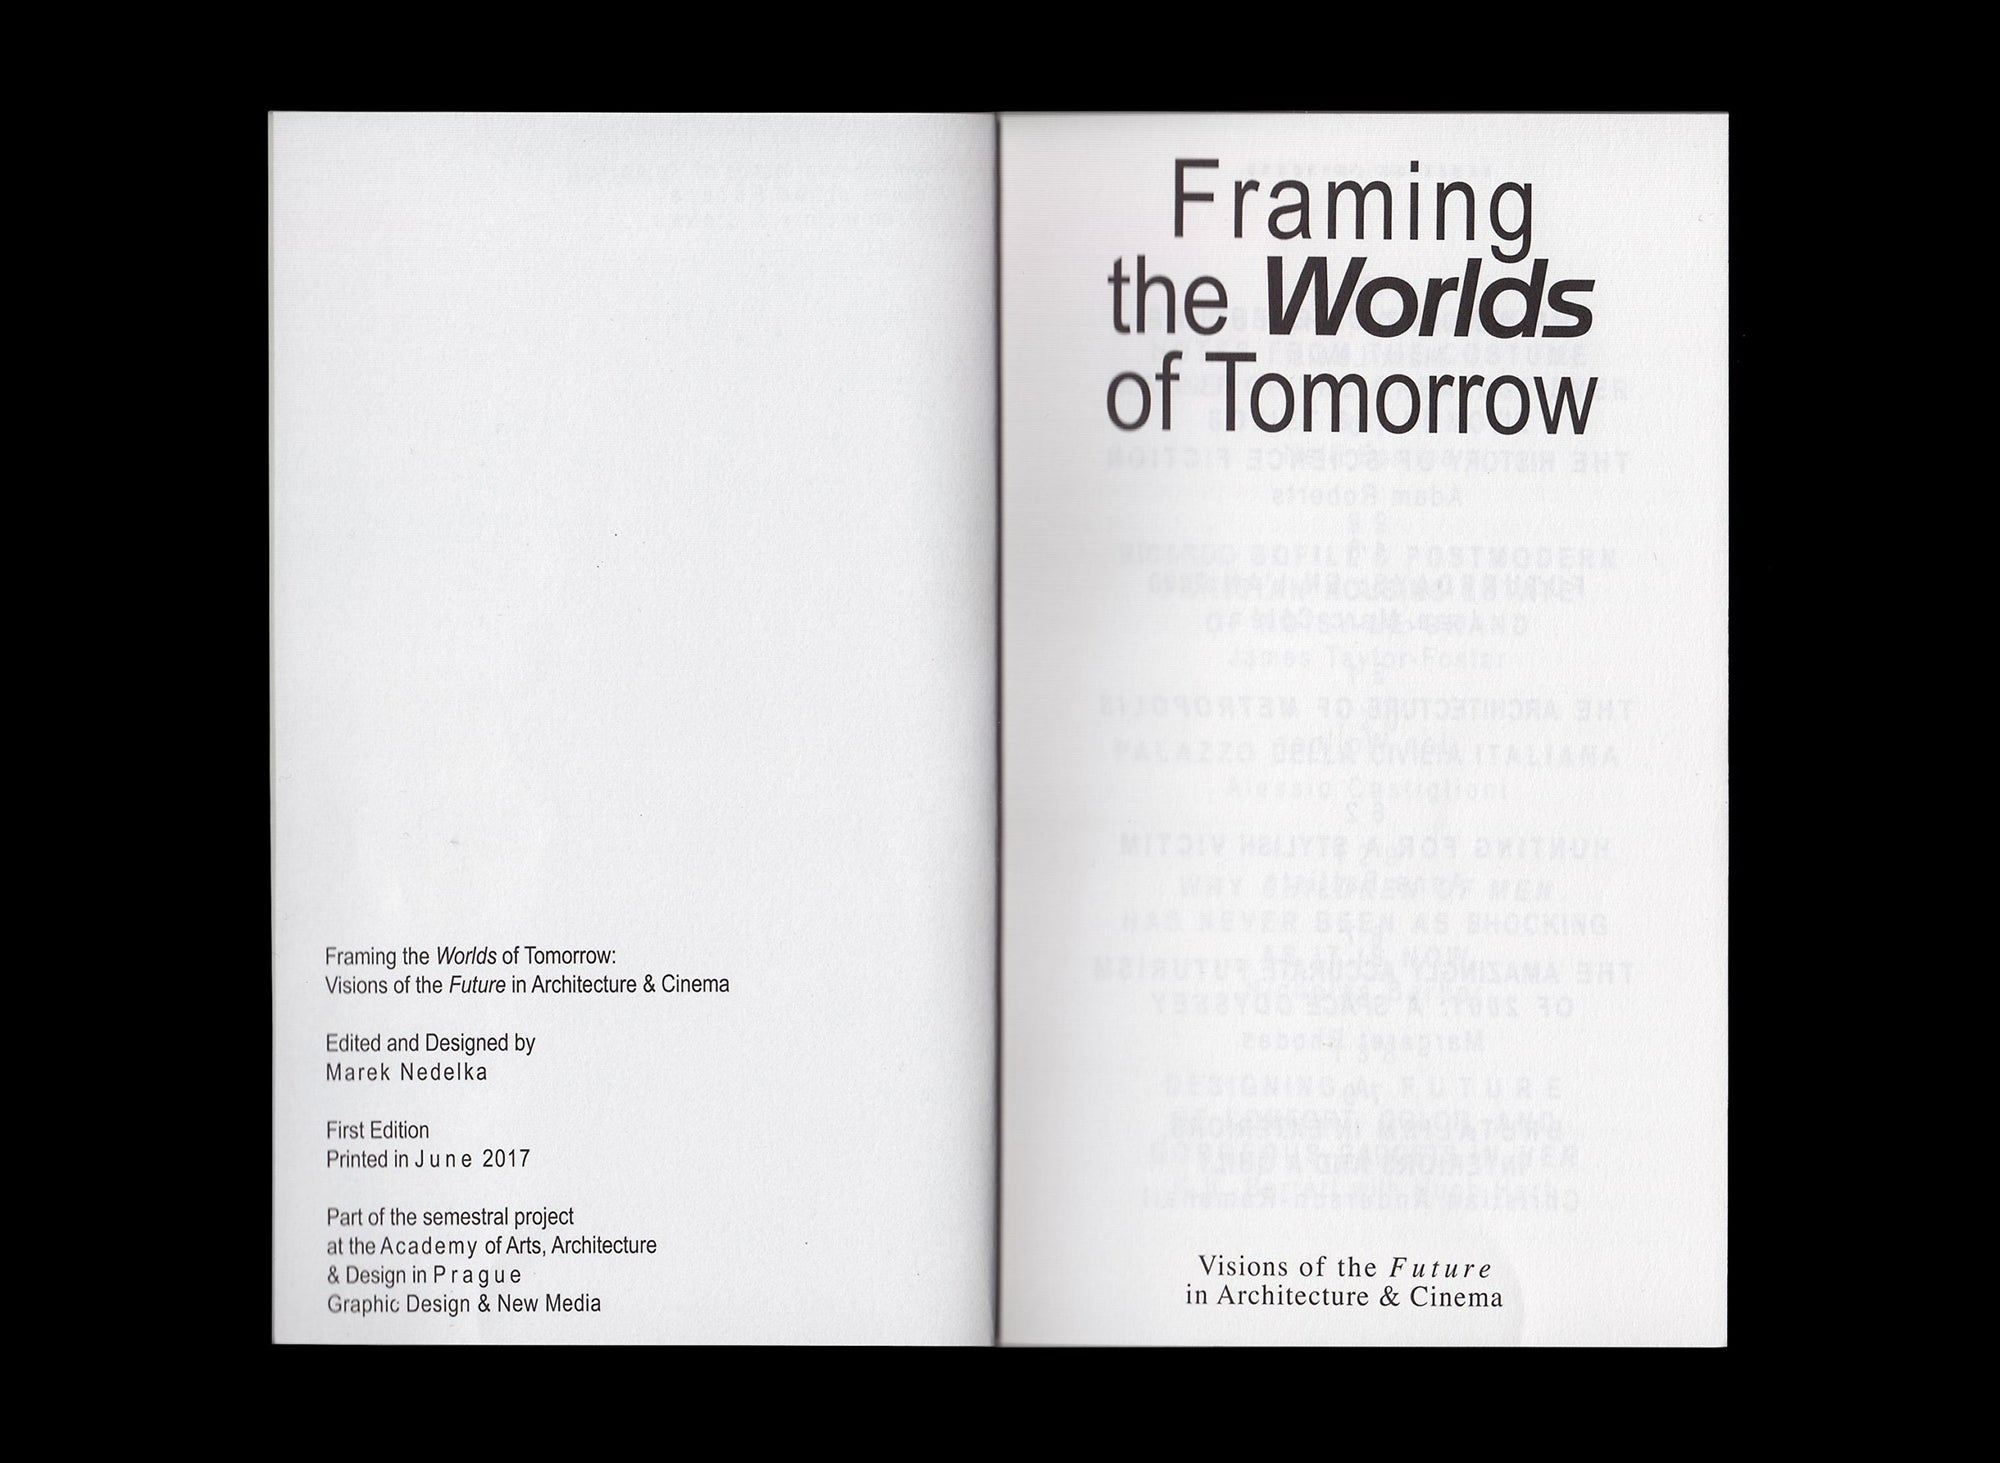 Marek Nedelka: Framing the Worlds of Tomorrow